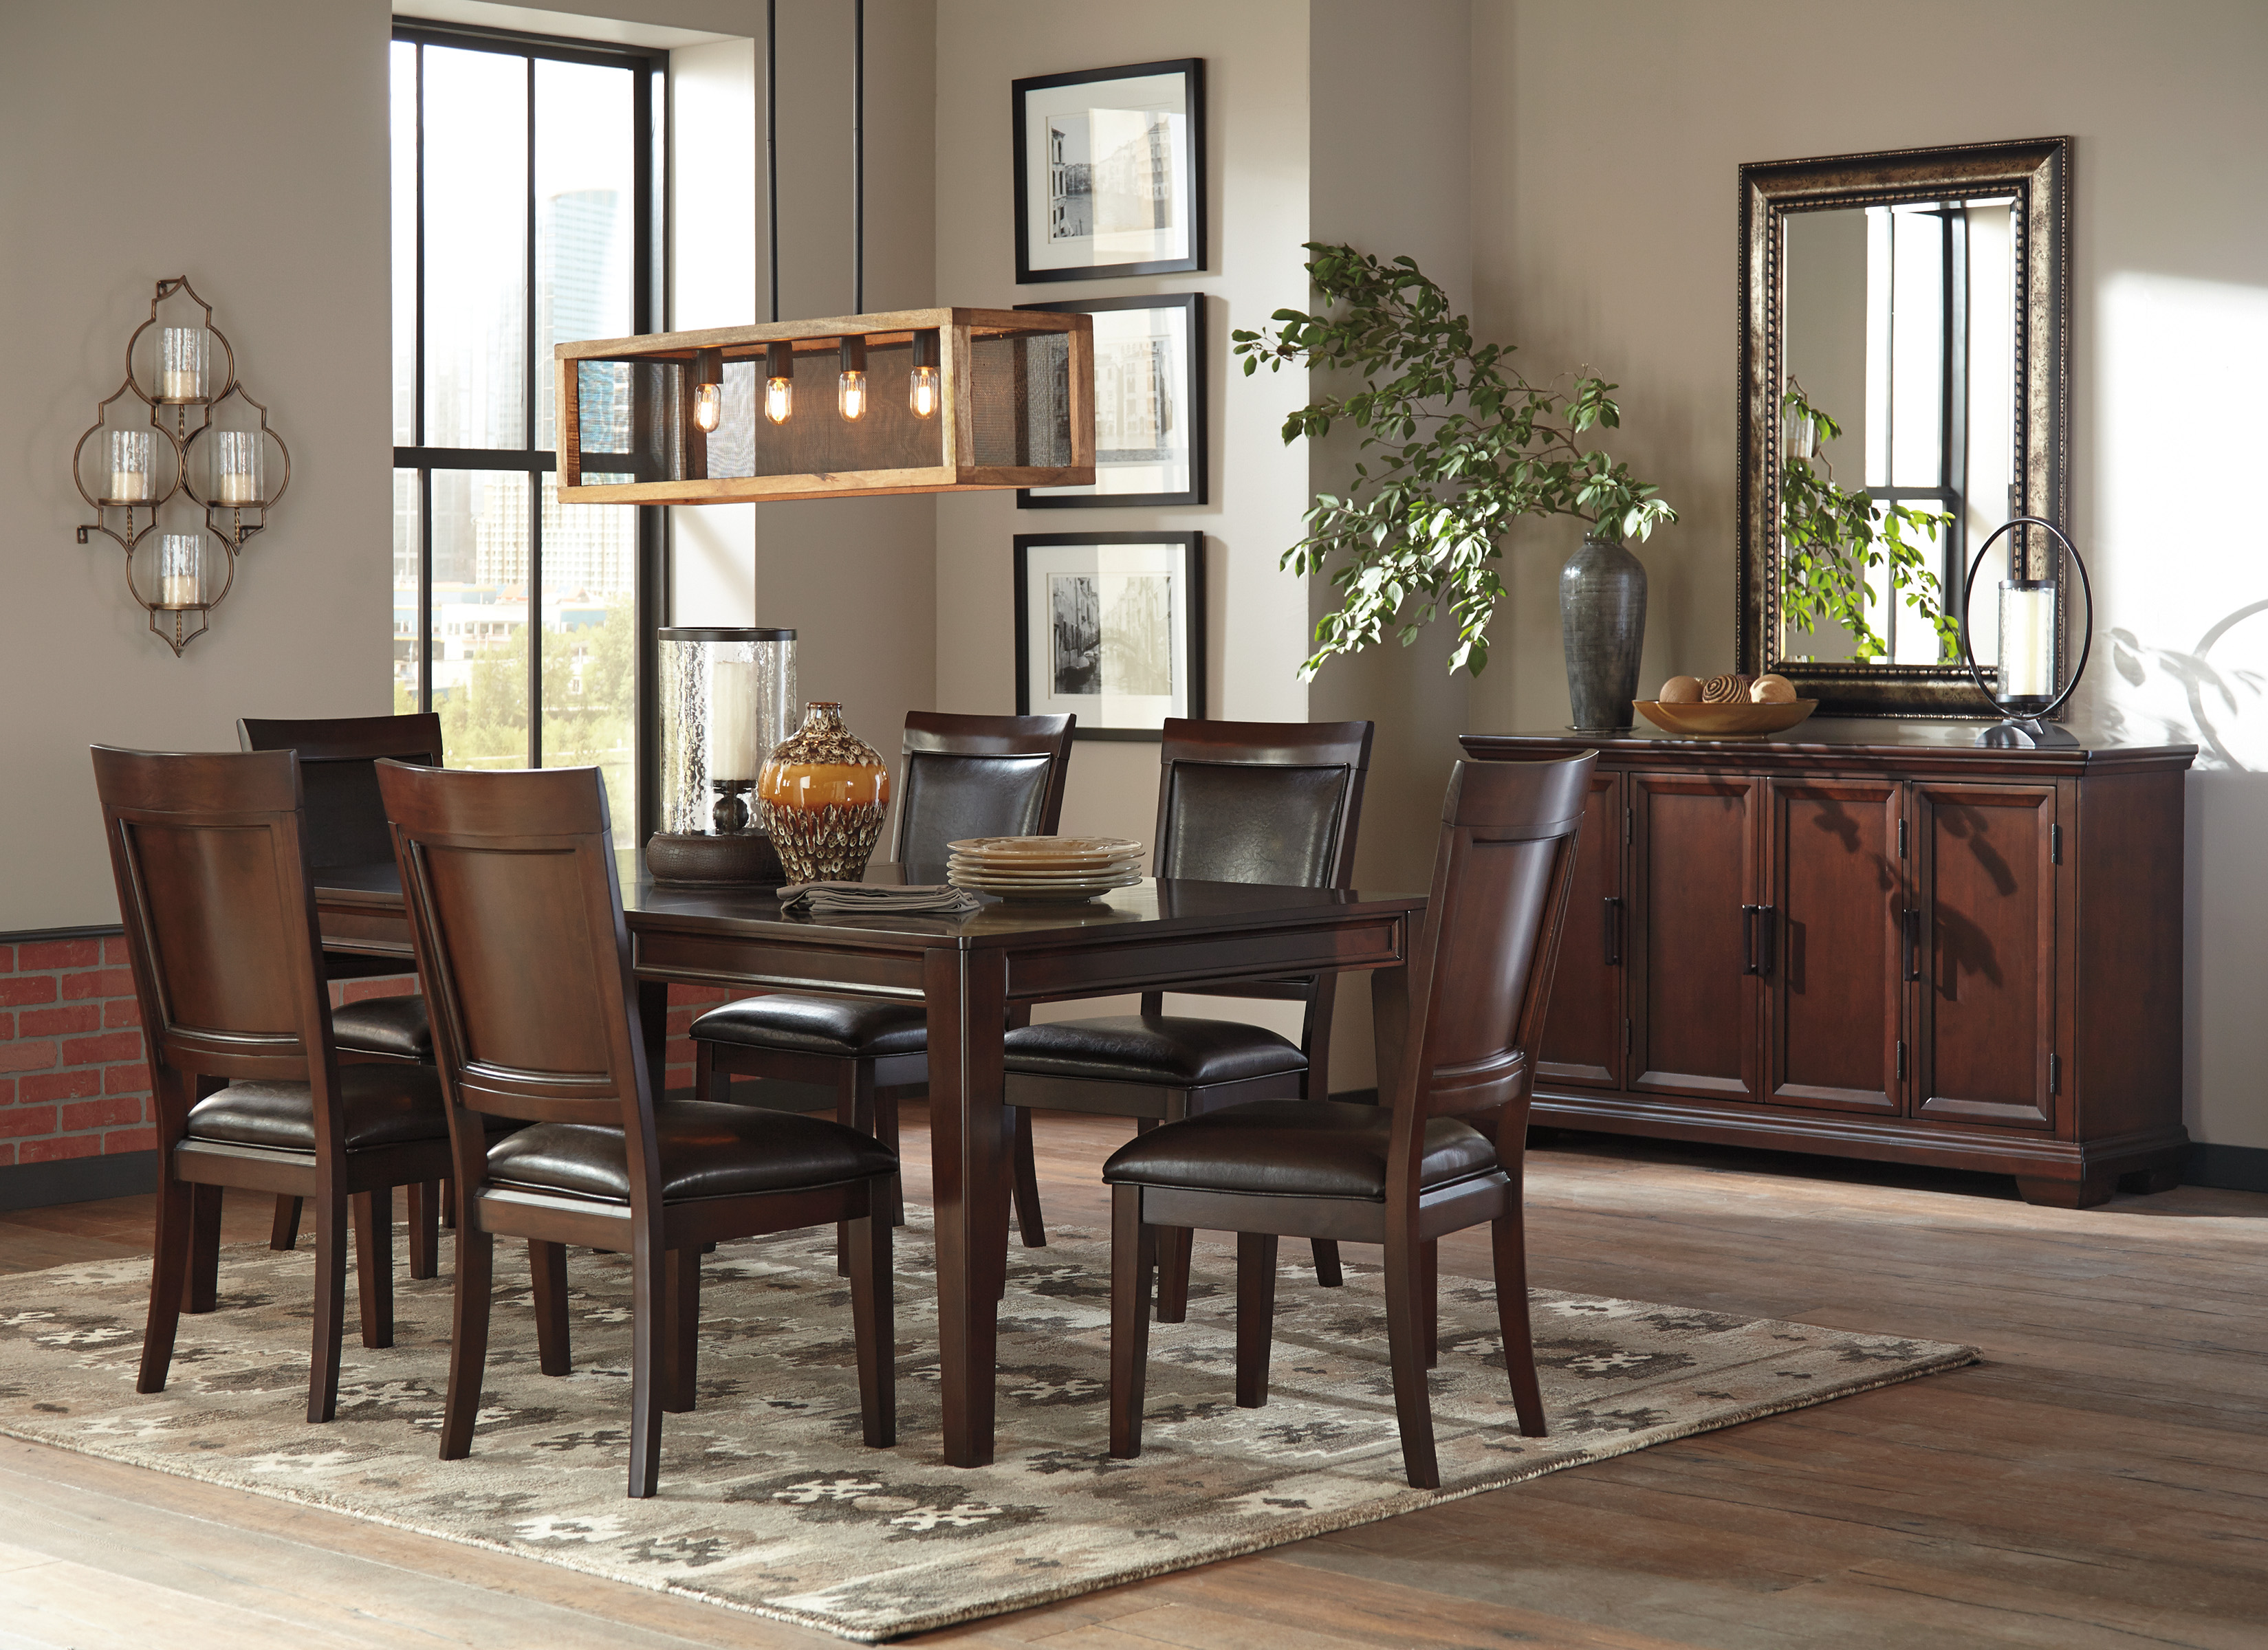 Ashley Shadyn 7 Piece Casual Dining Room Set In A Warm